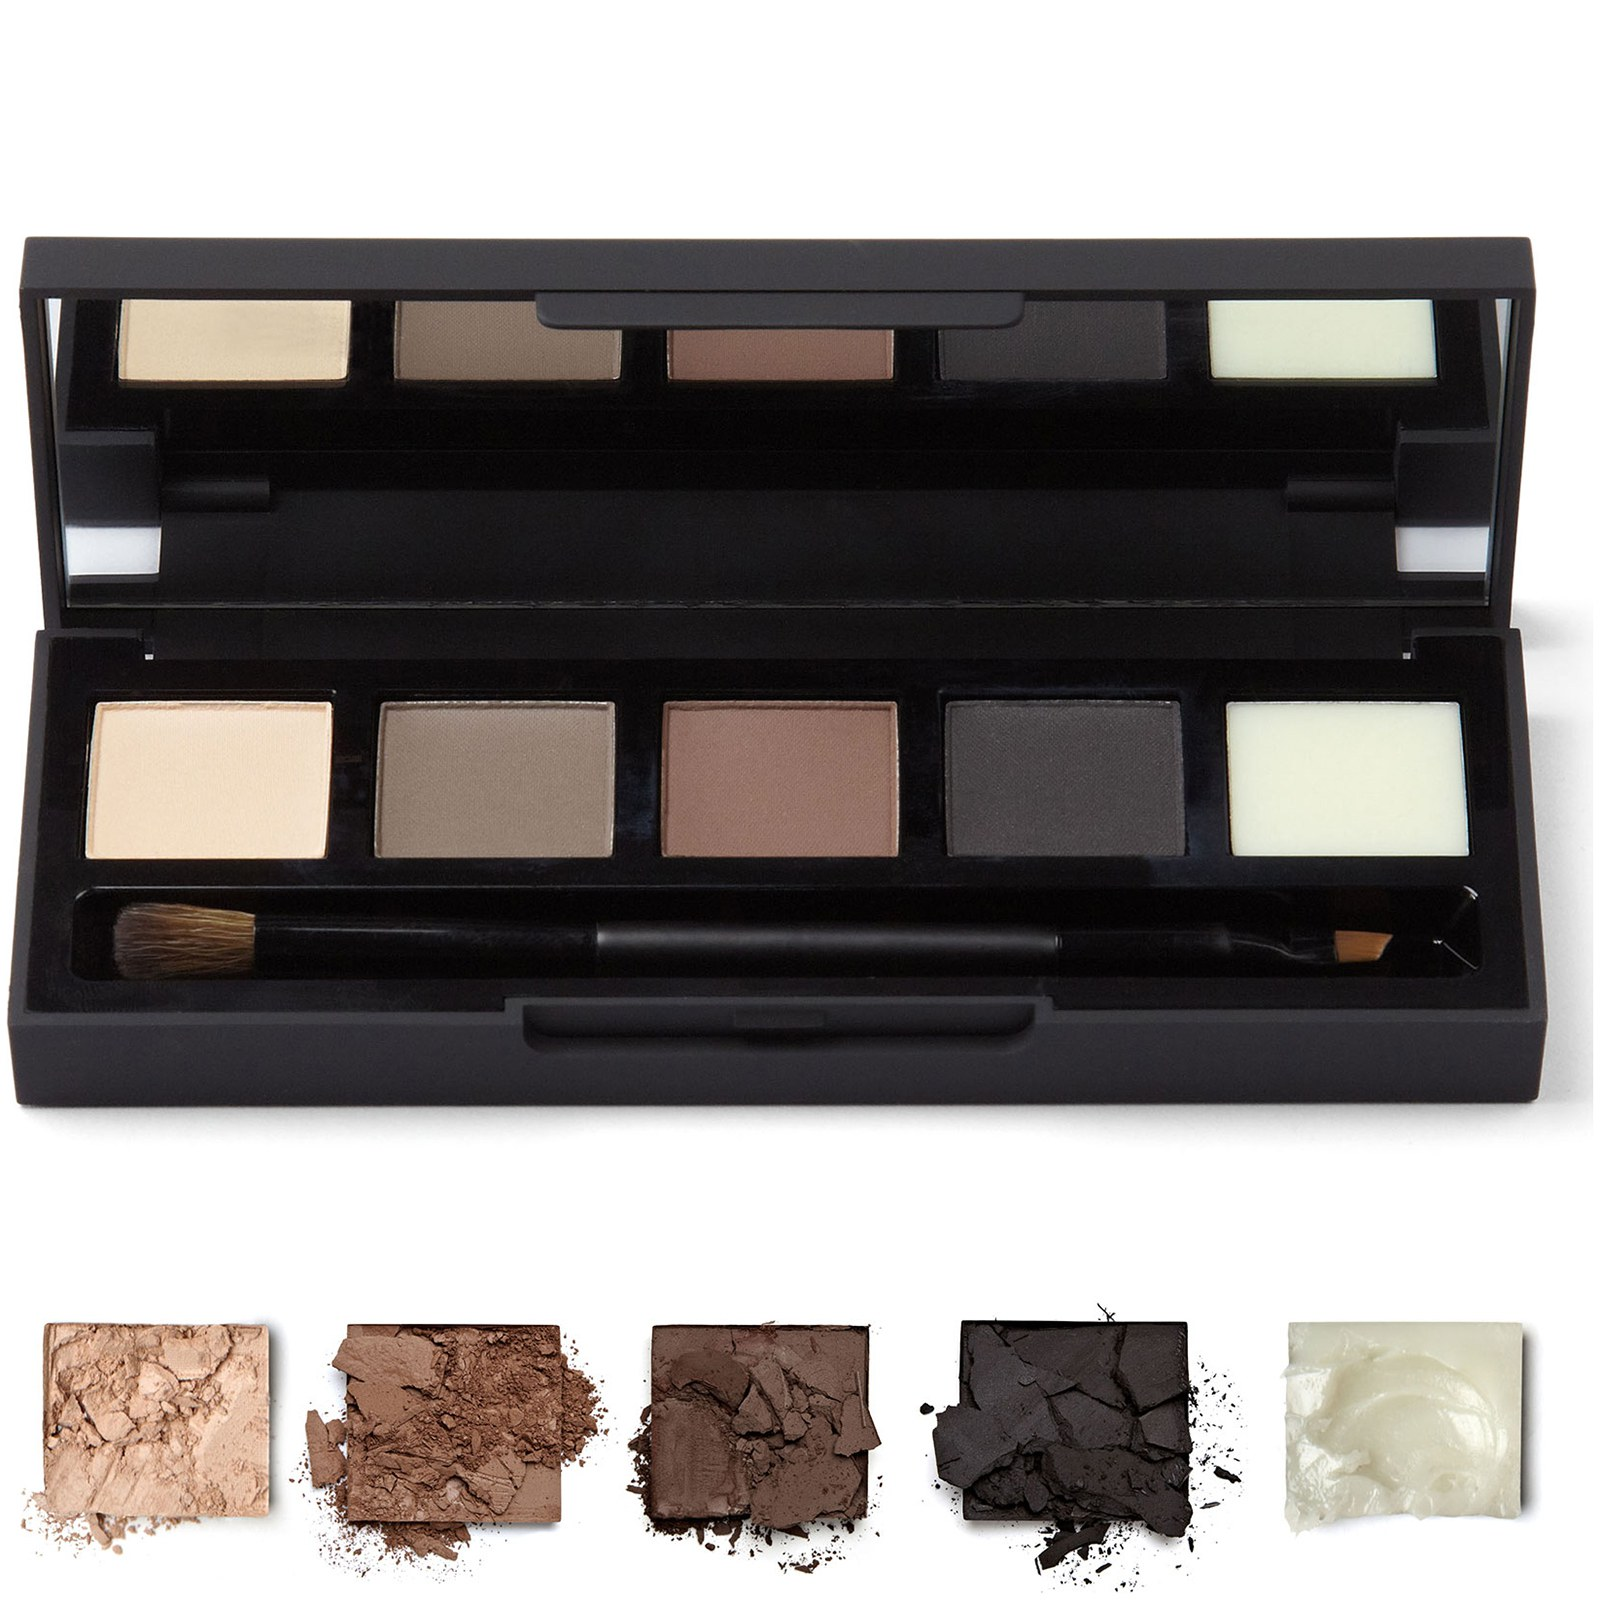 HD Brows Eye and Brow Palette - Vamp